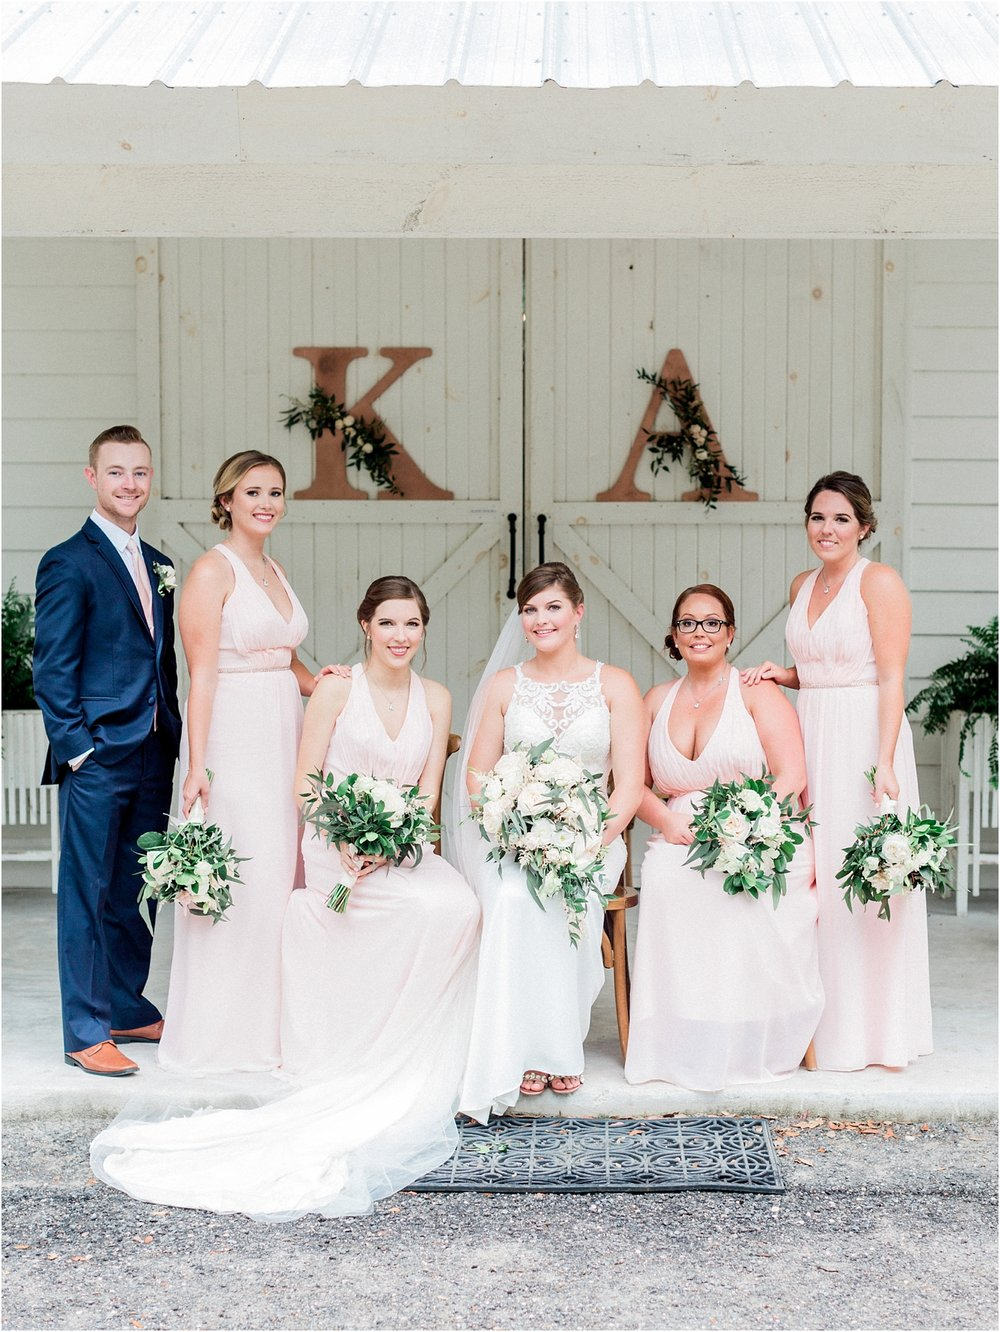 Lisa Silva Photography- Ponte Vedra Beach, St. Augustine and Jacksonville, Florida Fine Art Film Wedding and Boudoir Photography- Elegant Blush and Navy Wedding at Chandler Oaks Barn in St. Augustine, Florida_0036.jpg